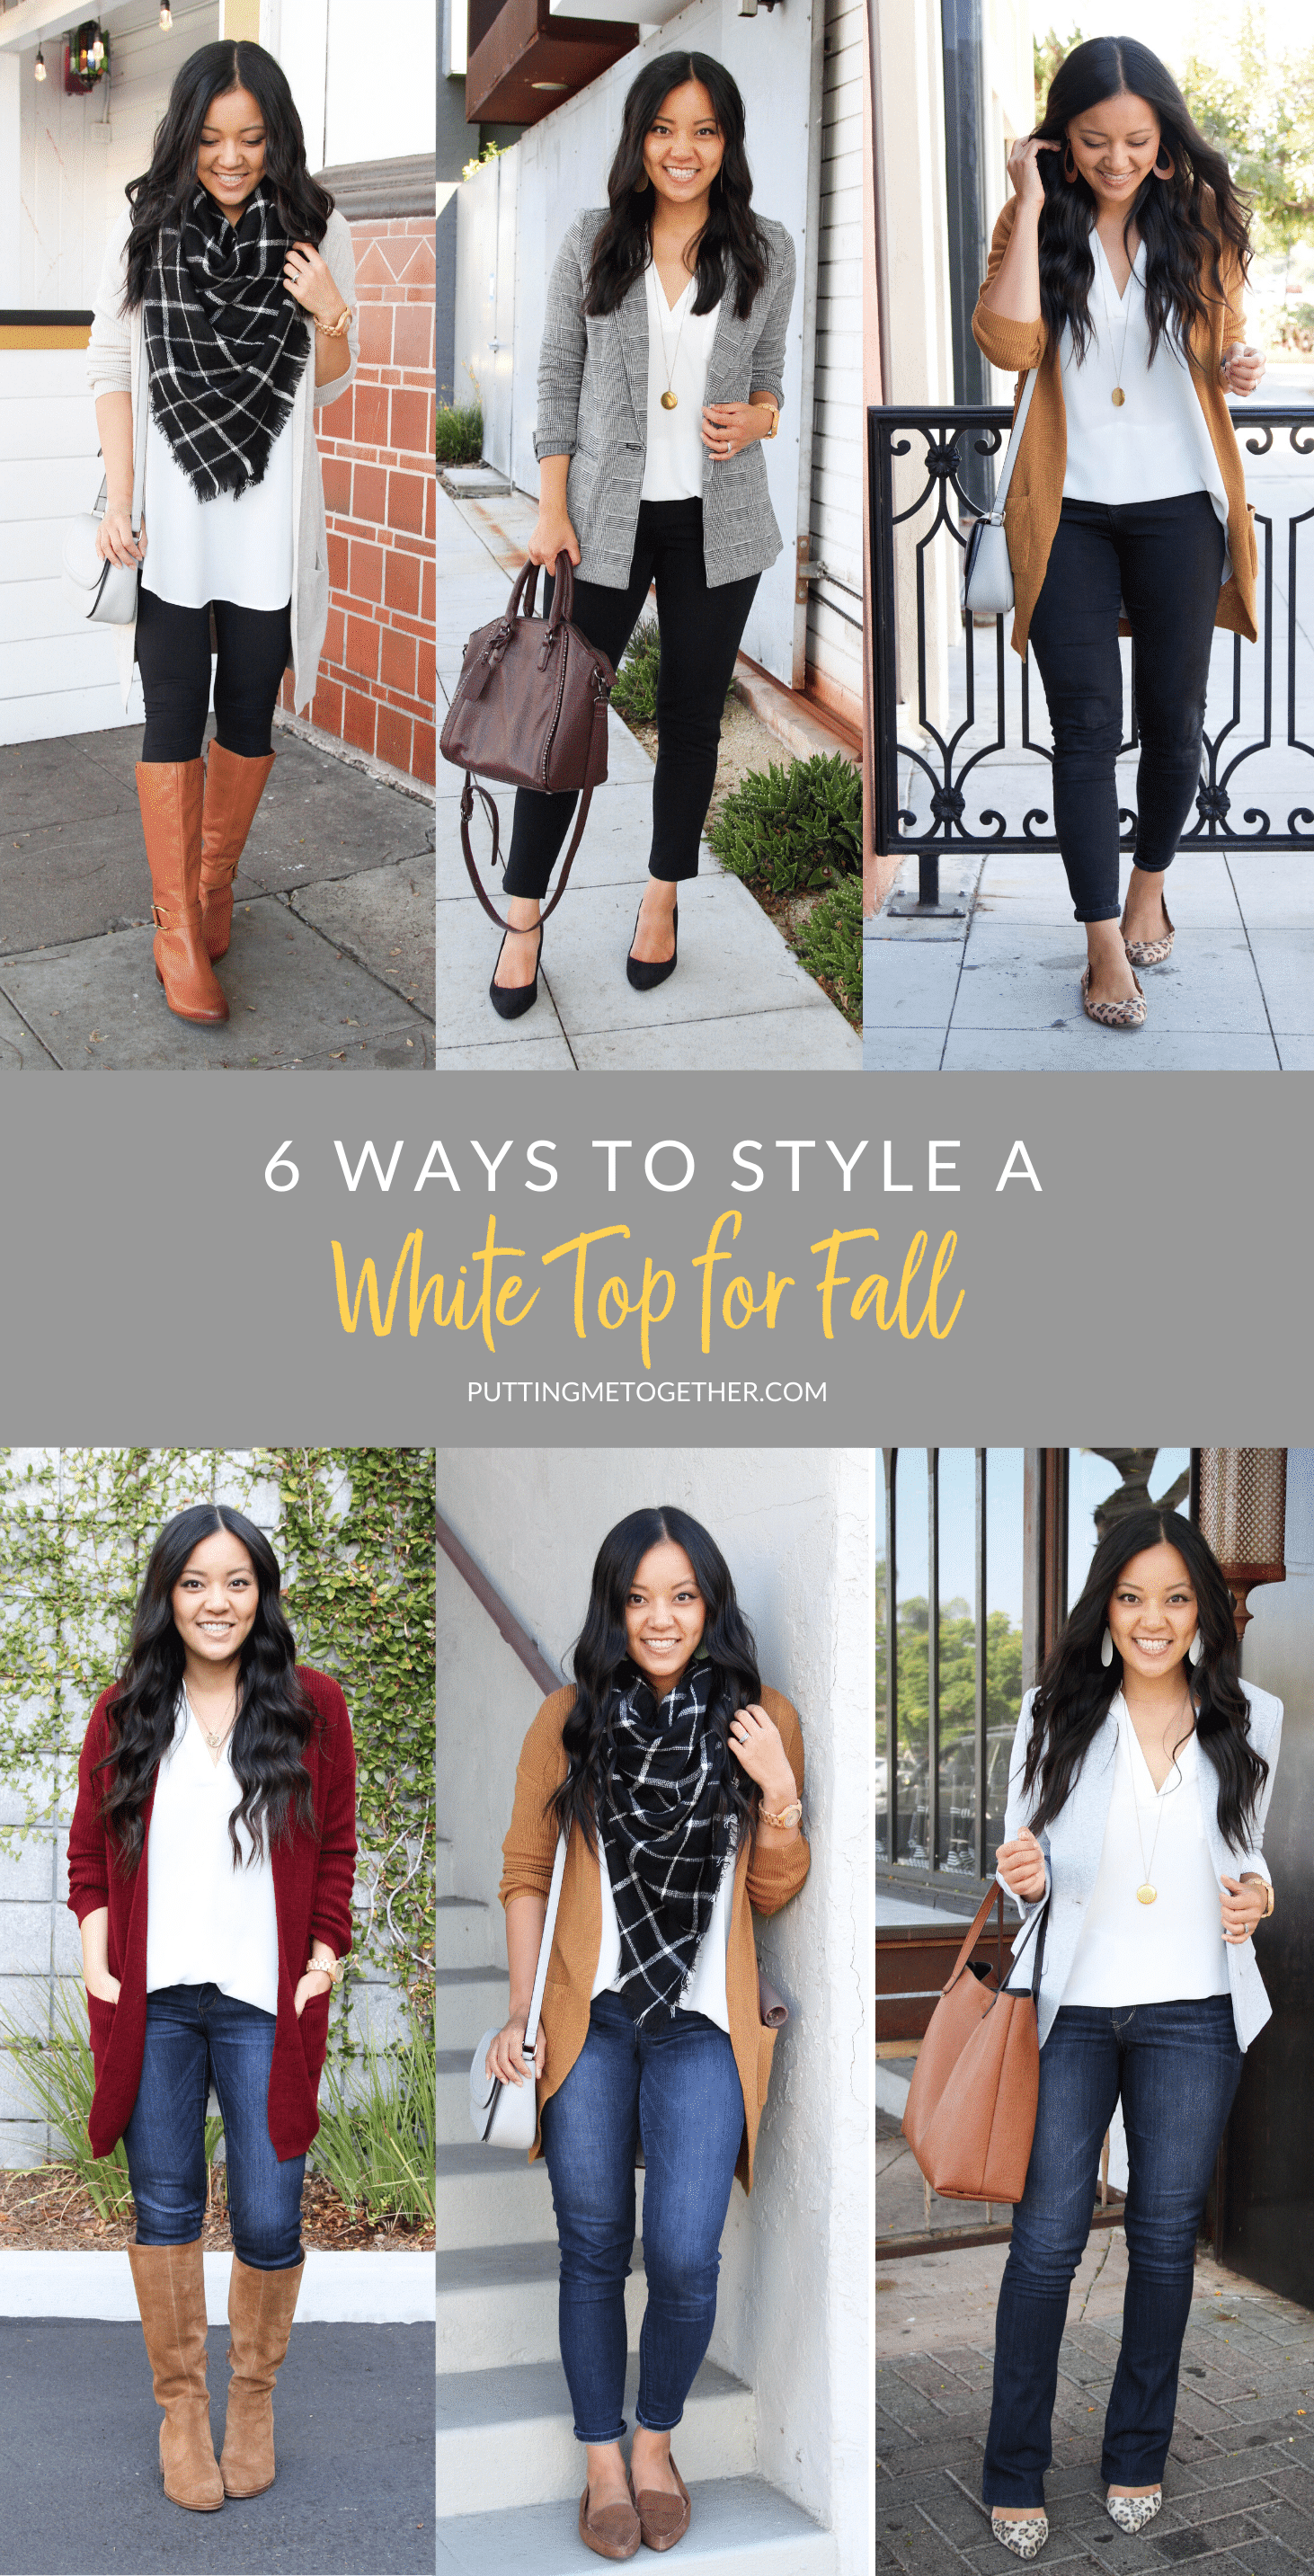 6 Ways to Style a White Top For Fall: Most Versatile Wardrobe Piece